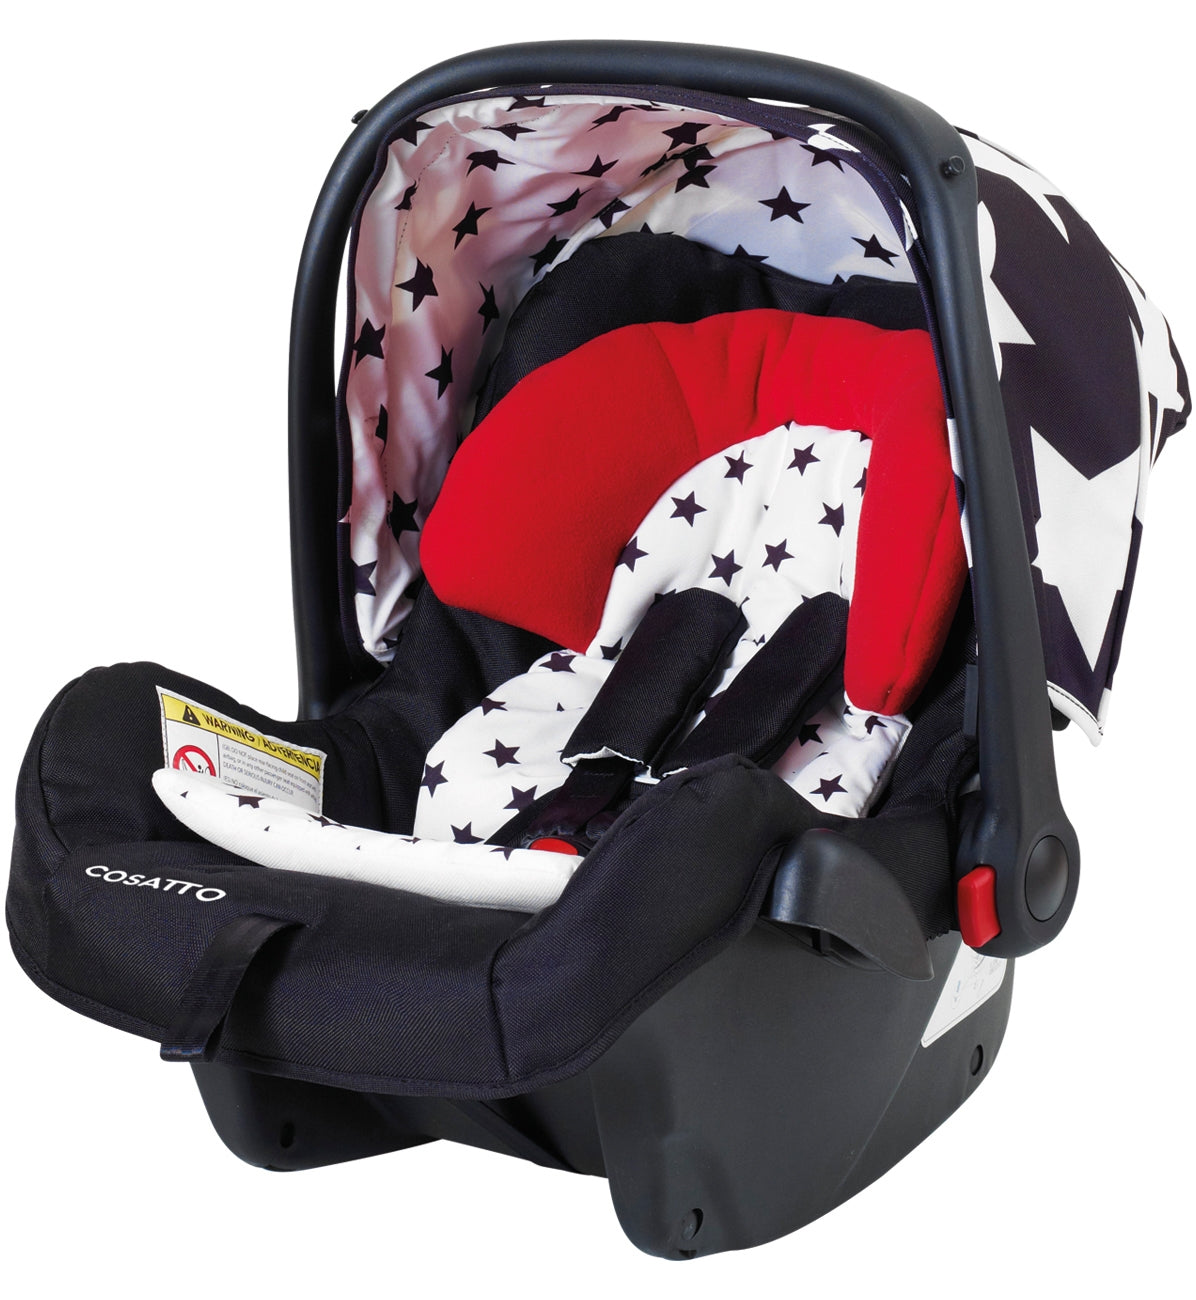 Car Seat, Tips for Keeping Children Safe During Travel